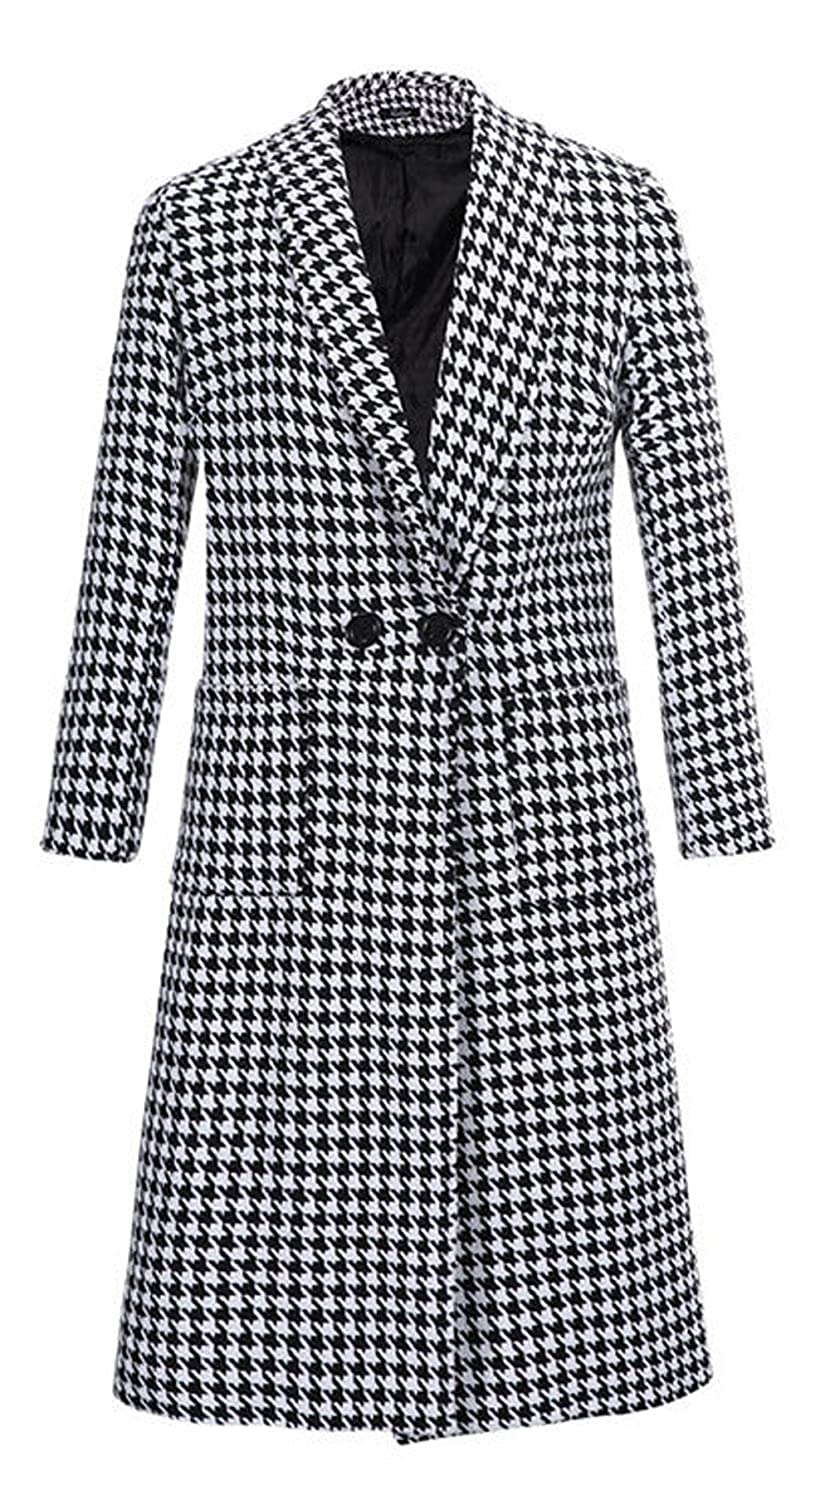 Darceil Women's Black and White Houndstooth Pattern Woolen Trench Coat